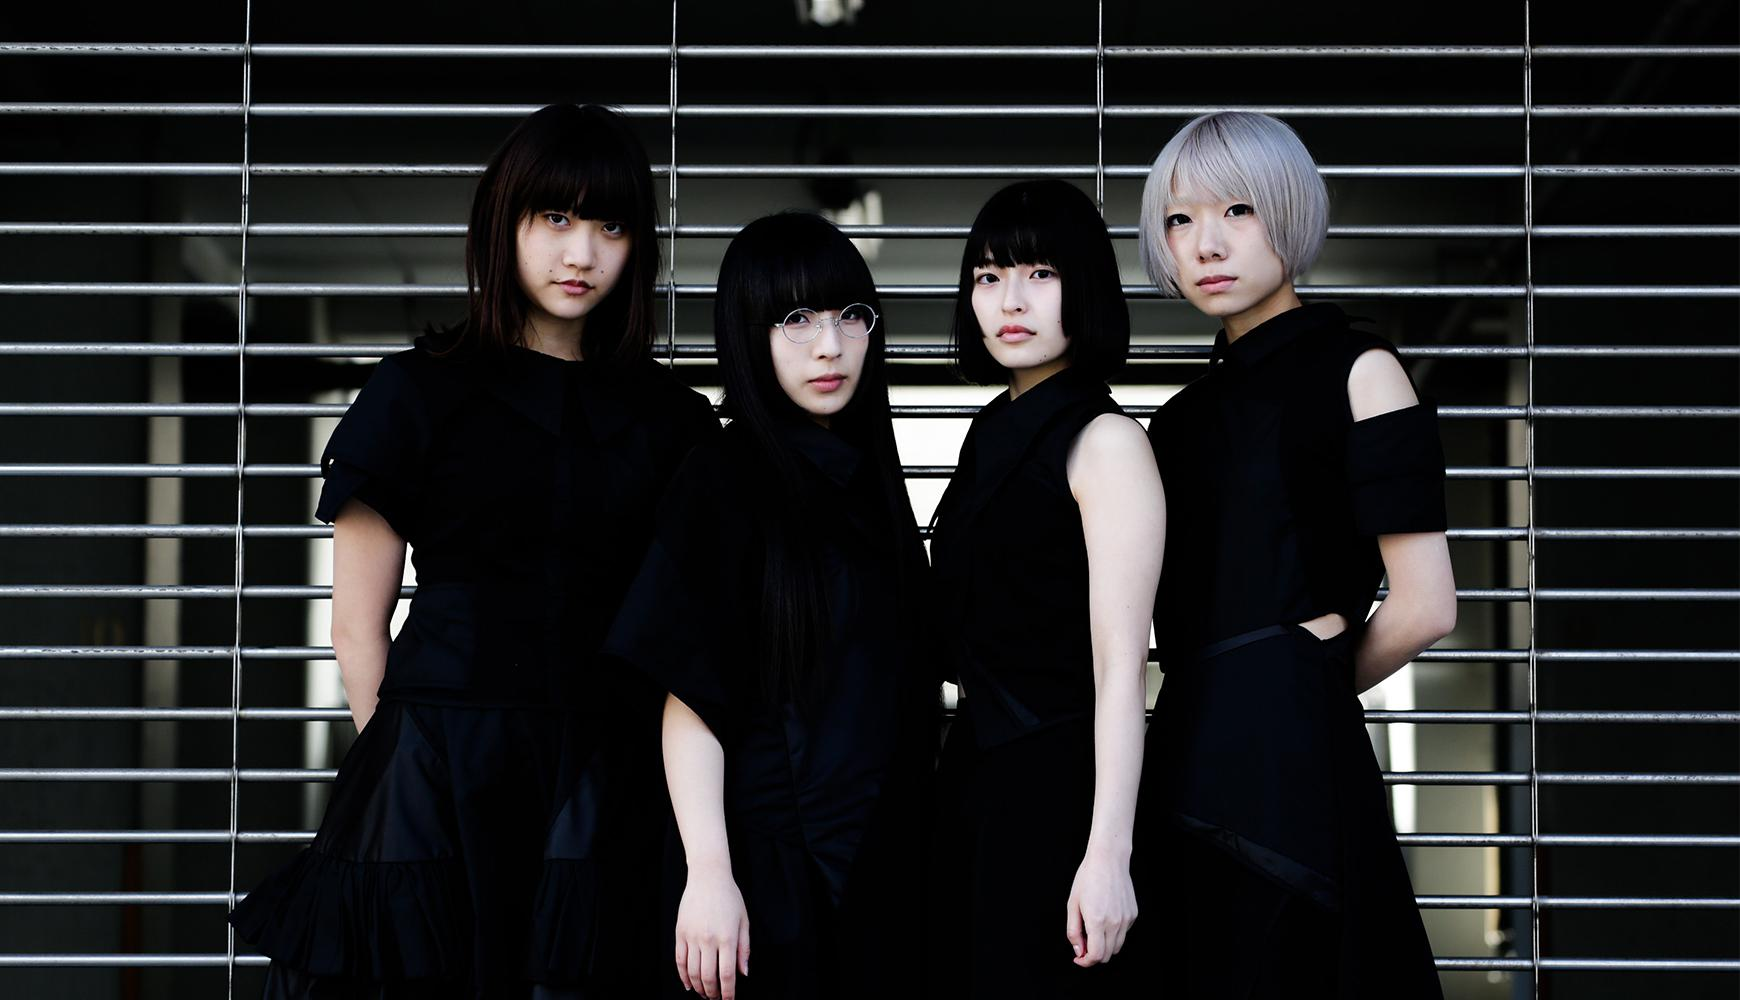 [ARTIST×FASHION]Maison book girl